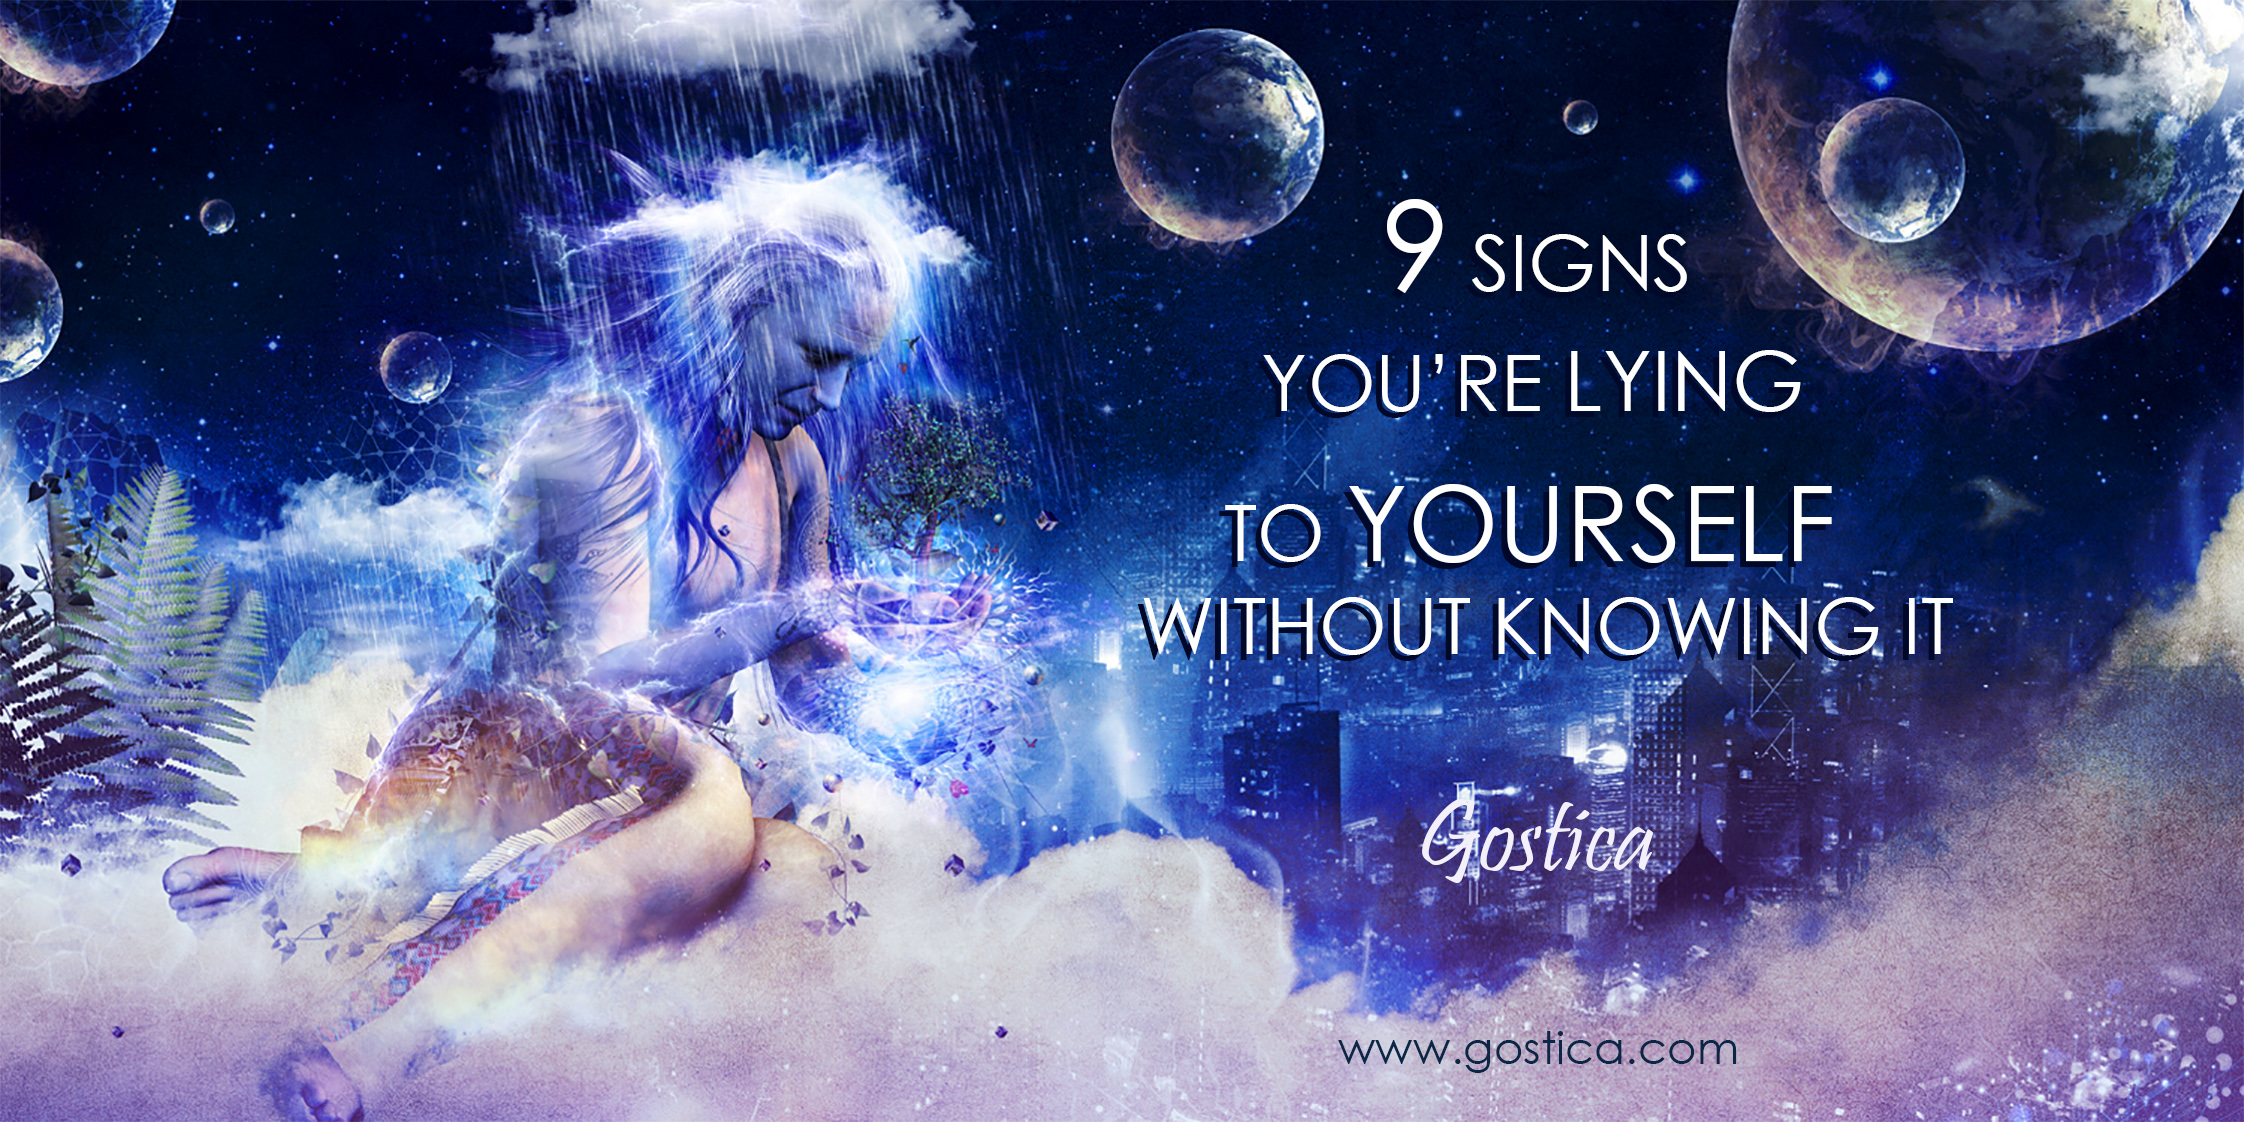 9-SIGNS-YOU'RE-LYING-TO-YOURSELF-WITHOUT-KNOWING-IT.jpg